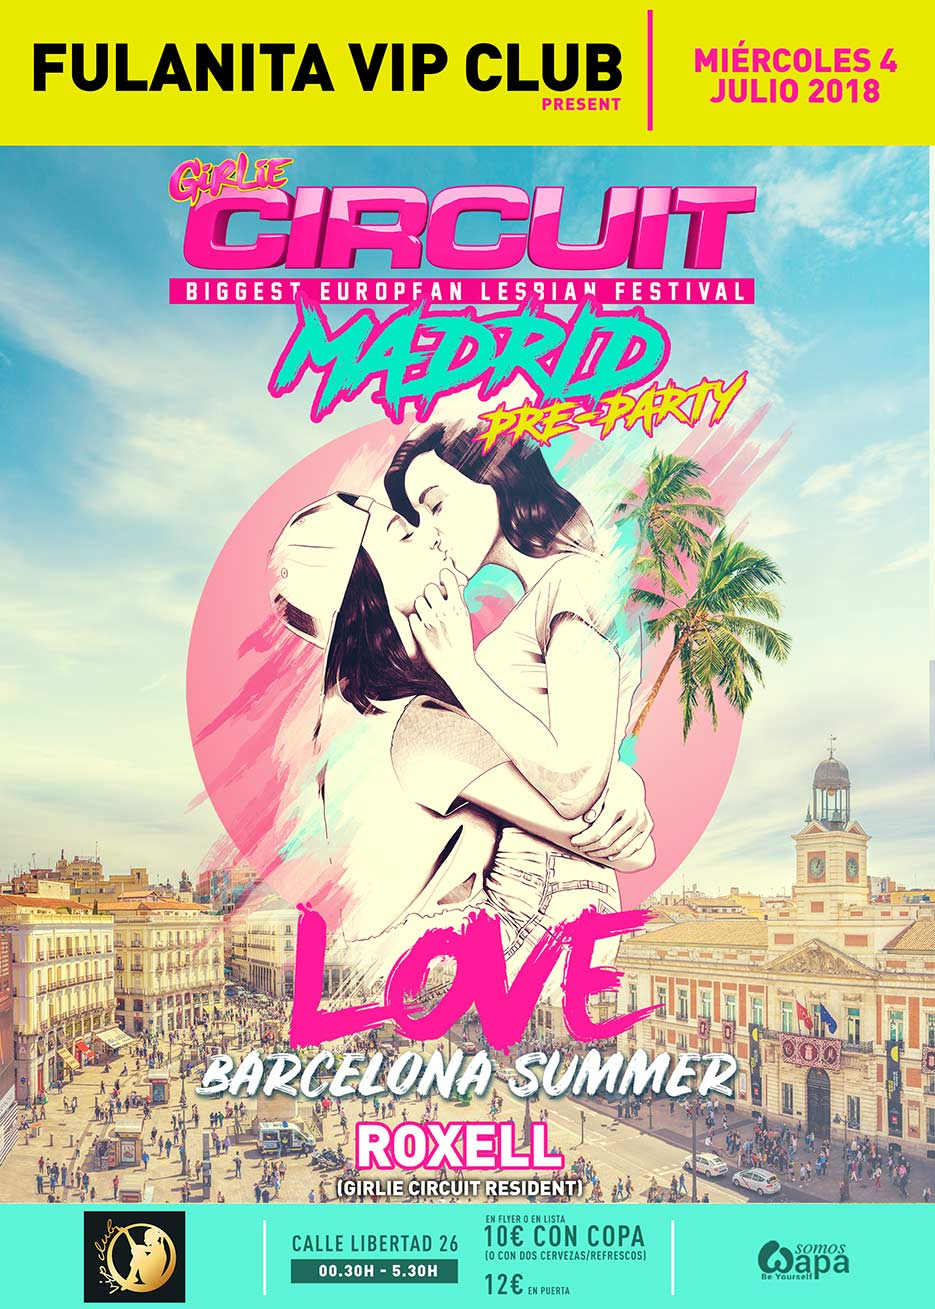 madrid-girlie-circuit-lesbian-fiesta-party-free